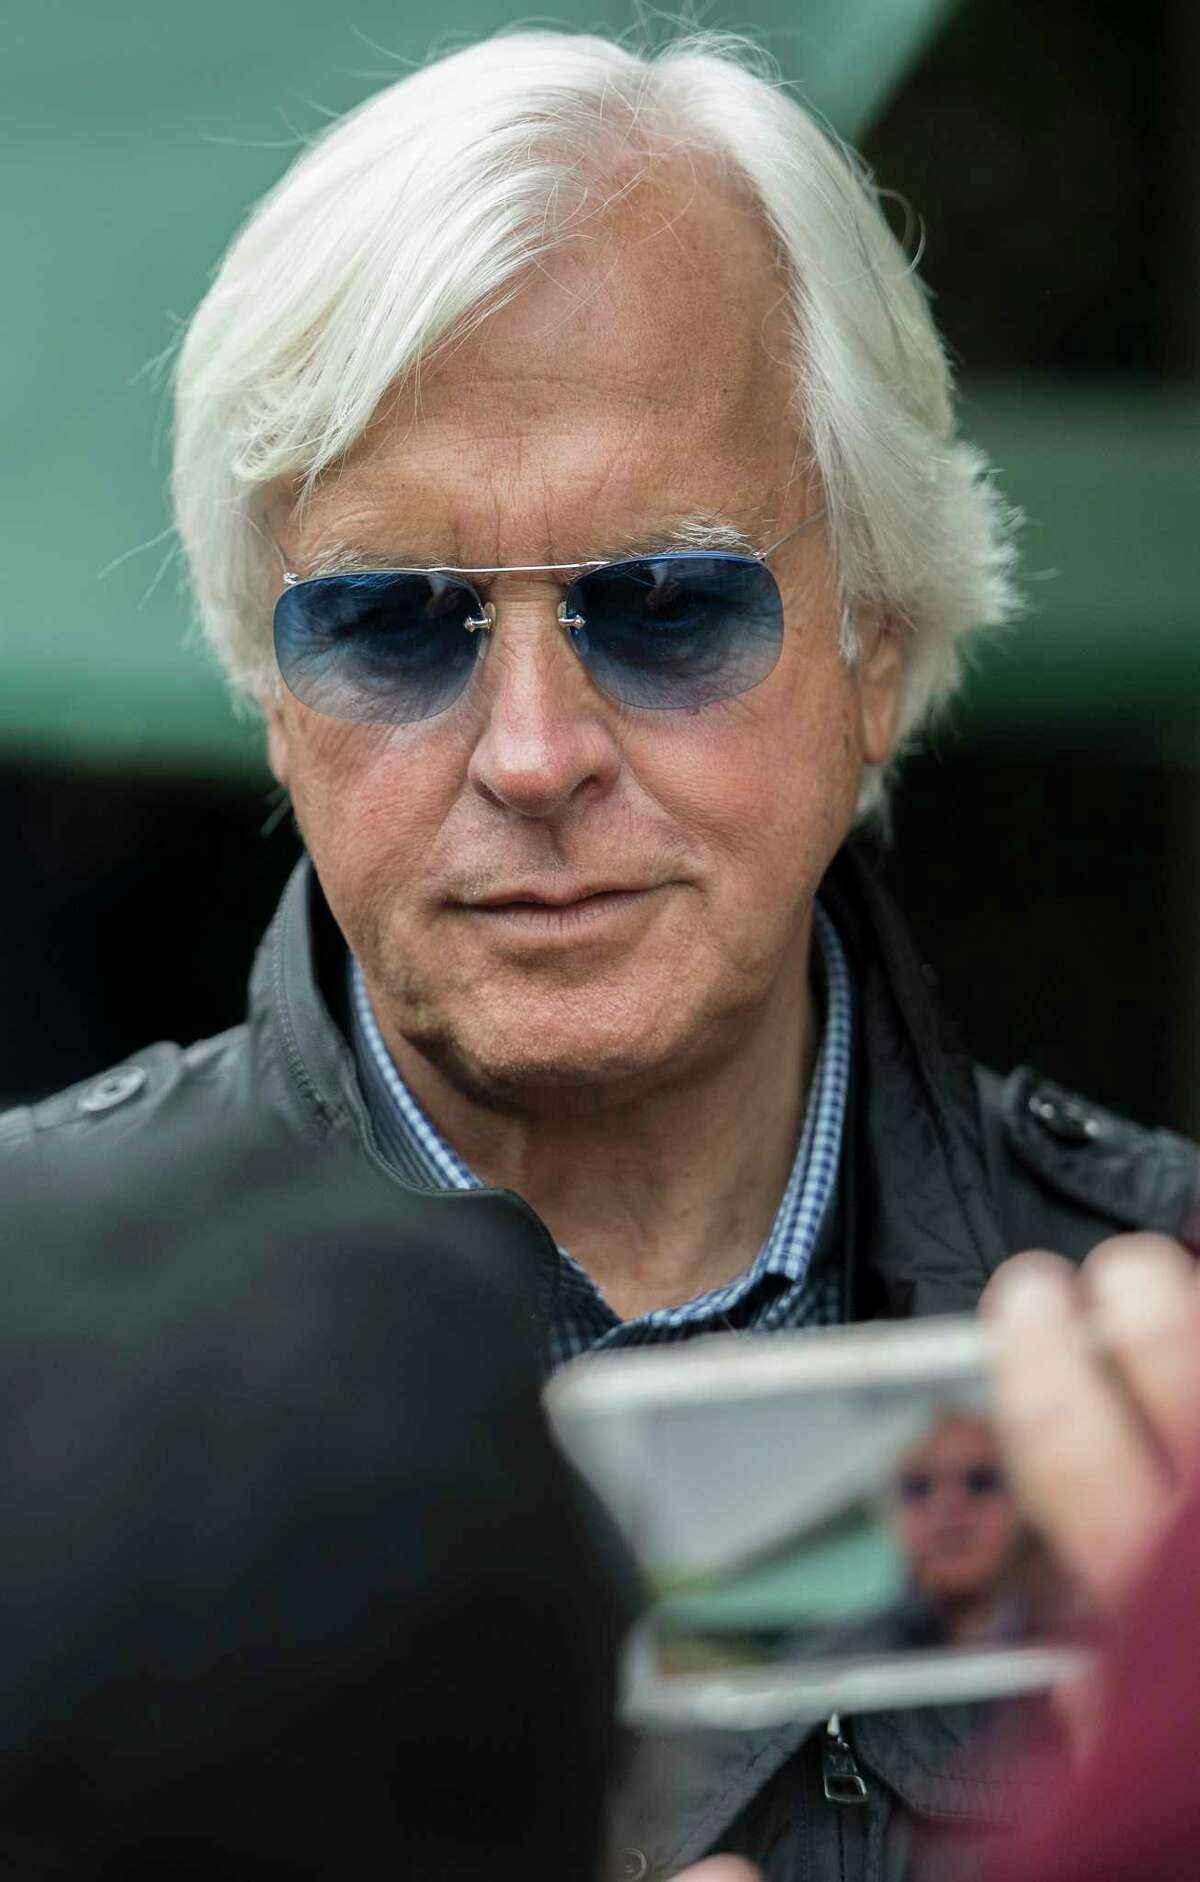 Justify's trainer Bob Baffert poses for a cell phone photo at the Pimlico Race Course on Preakness Day Friday May 18, 2018 in Baltimore, MD. (Skip Dickstein/Times Union)